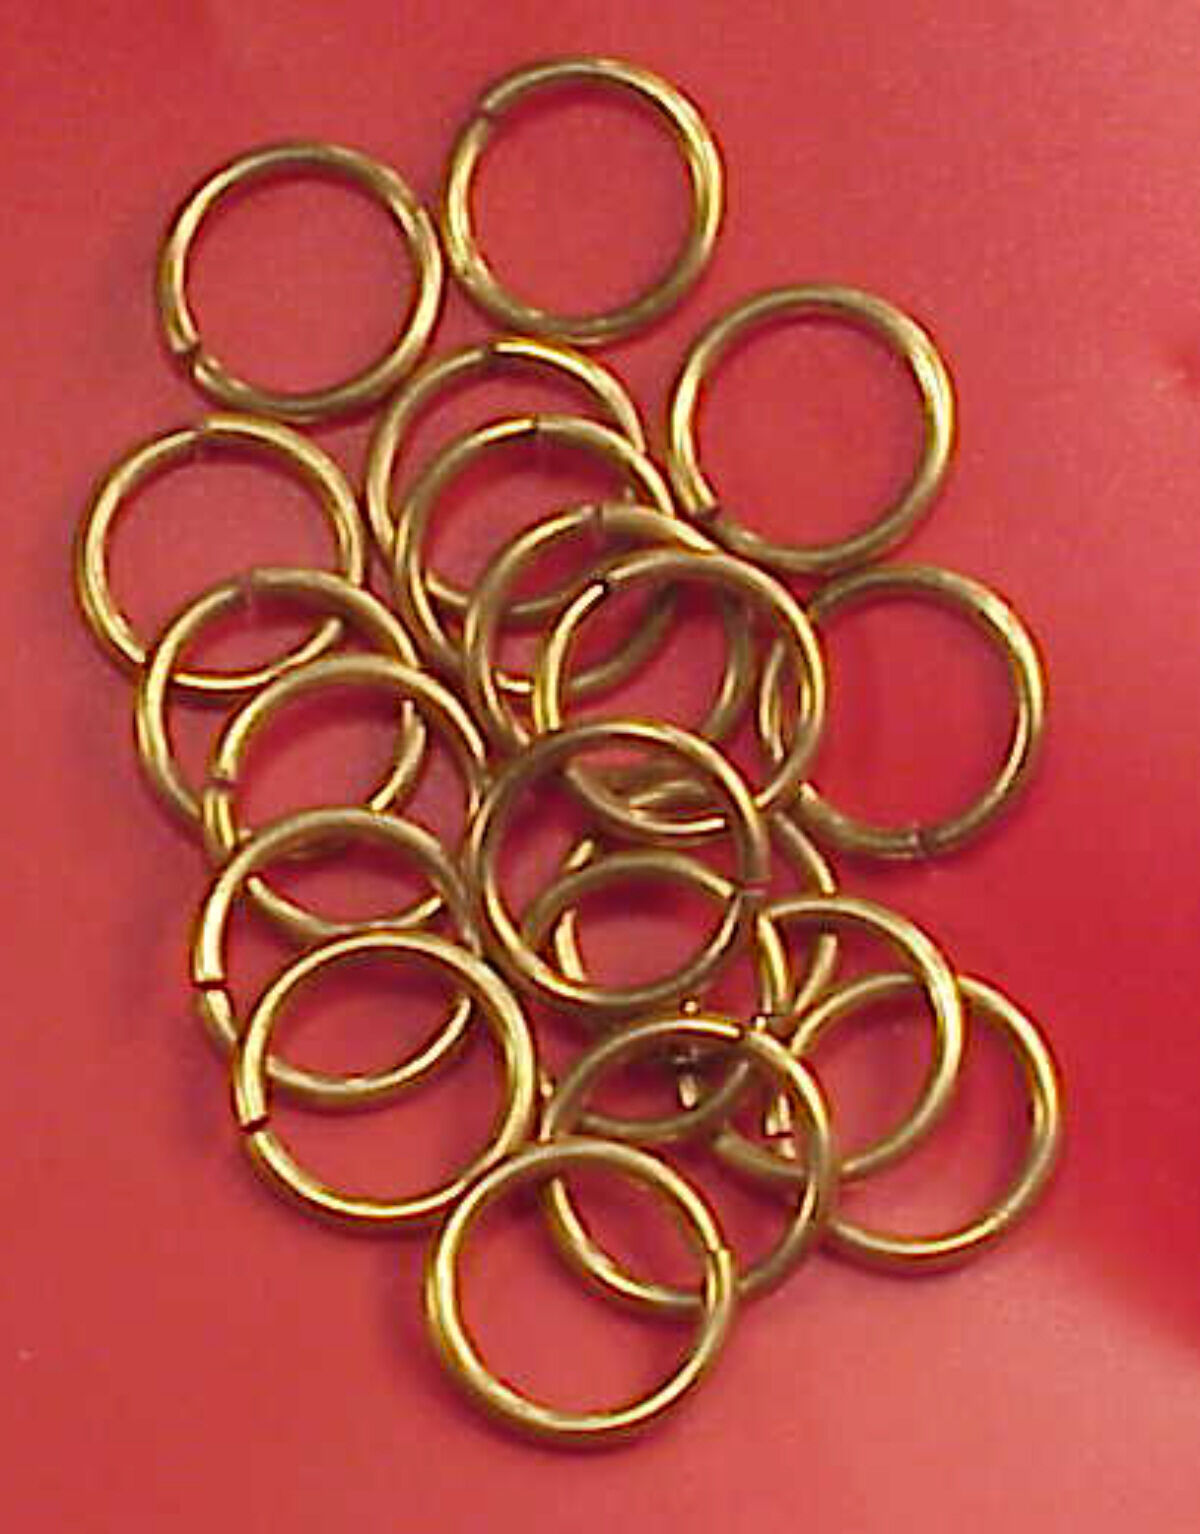 Vintage Solid Pewter 15//16 inch Jump Rings 4 Chains 20 Pieces Altered Art Crafts